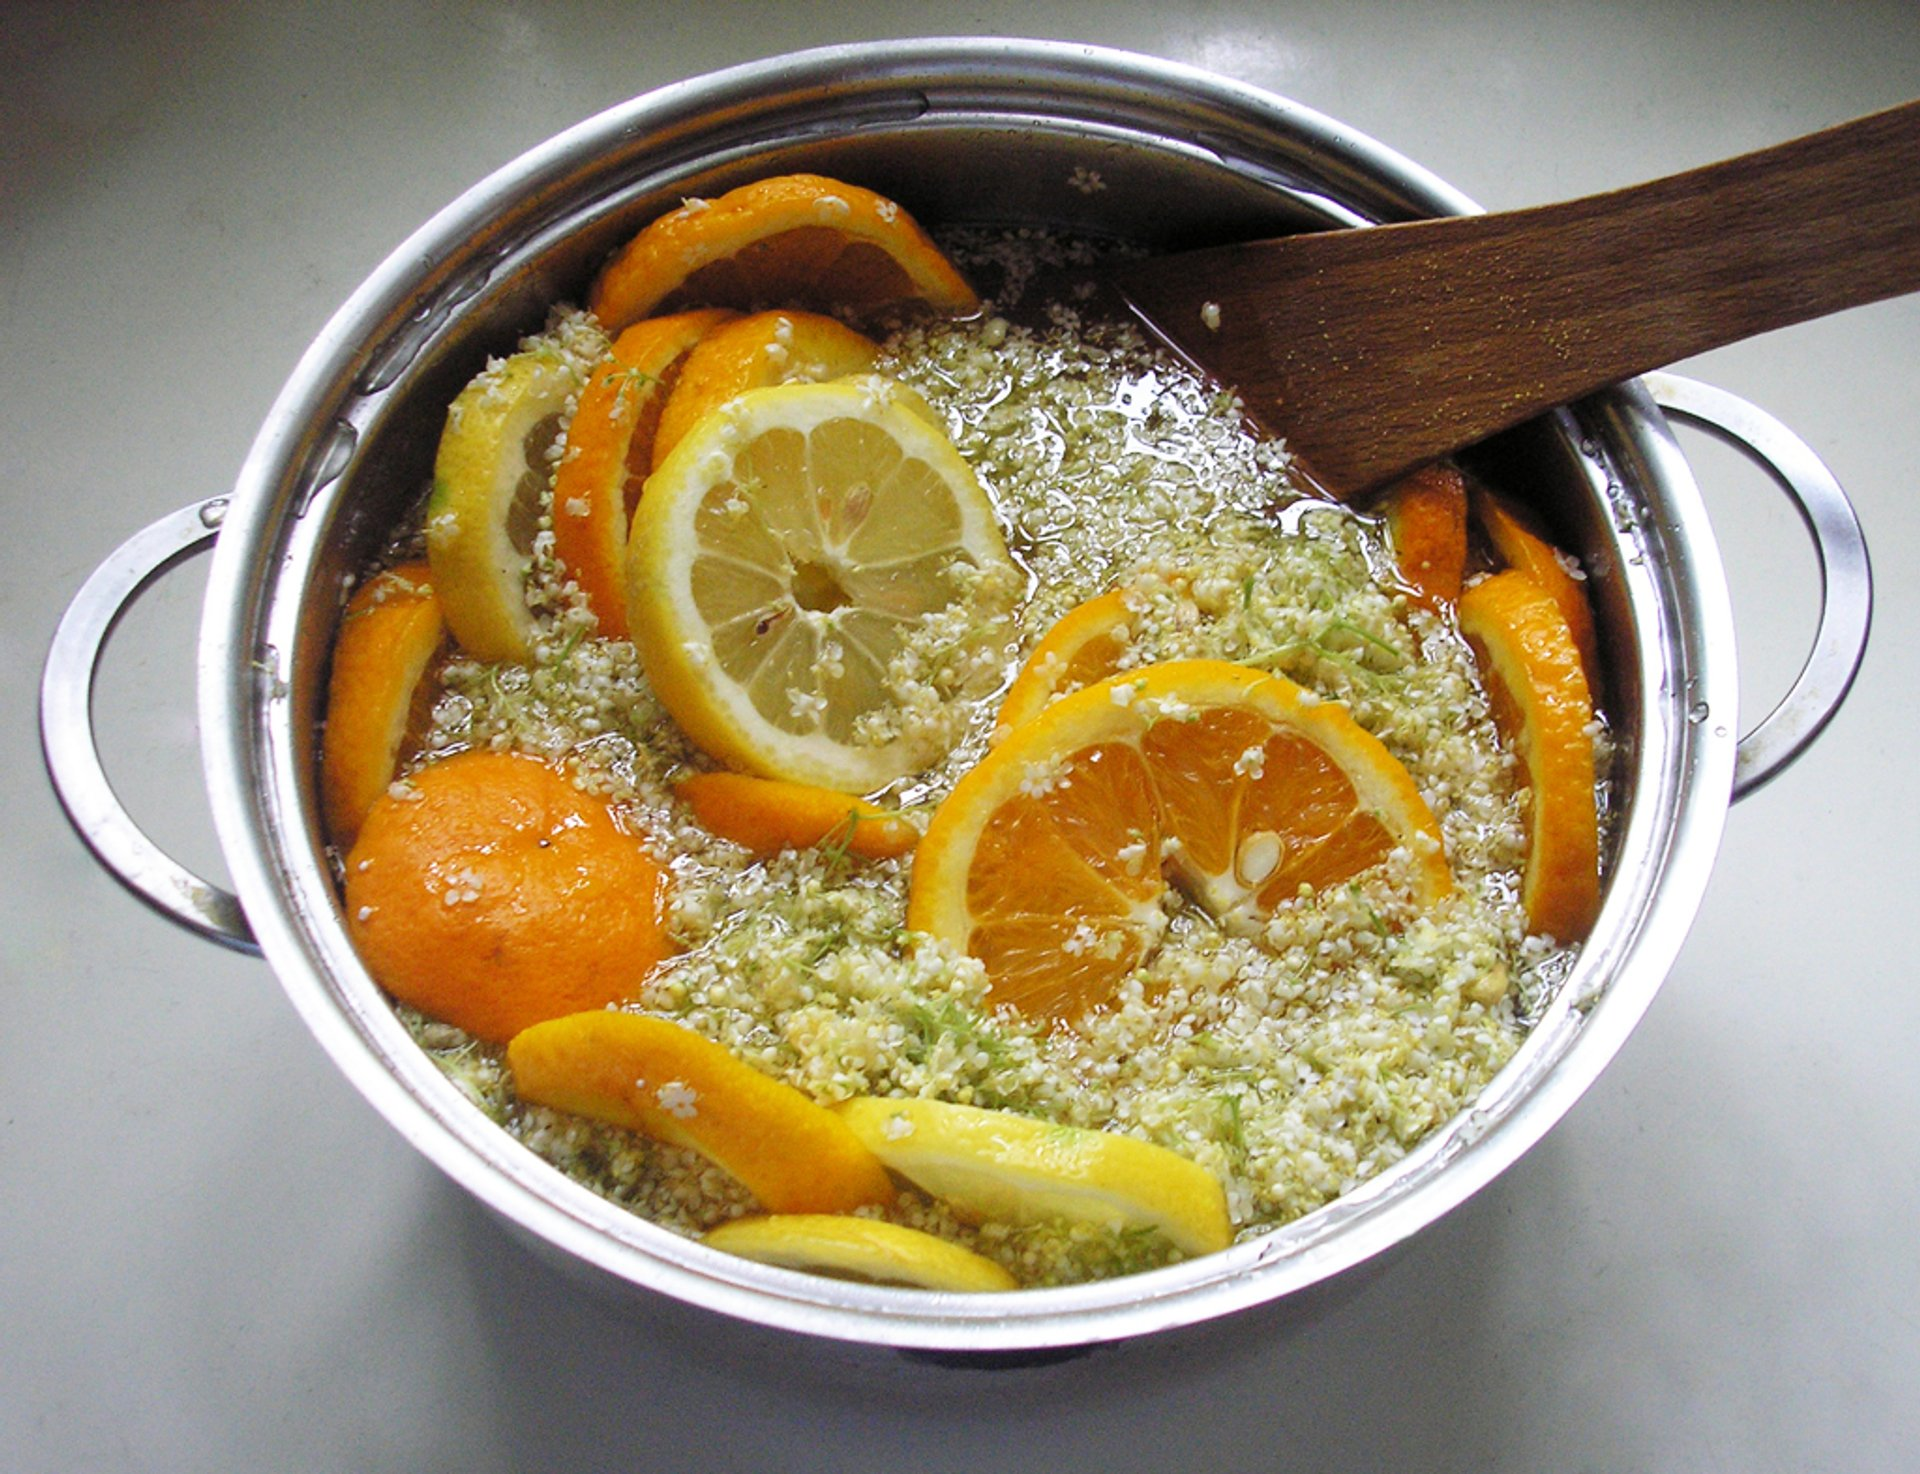 Making elderflower syrup 2020